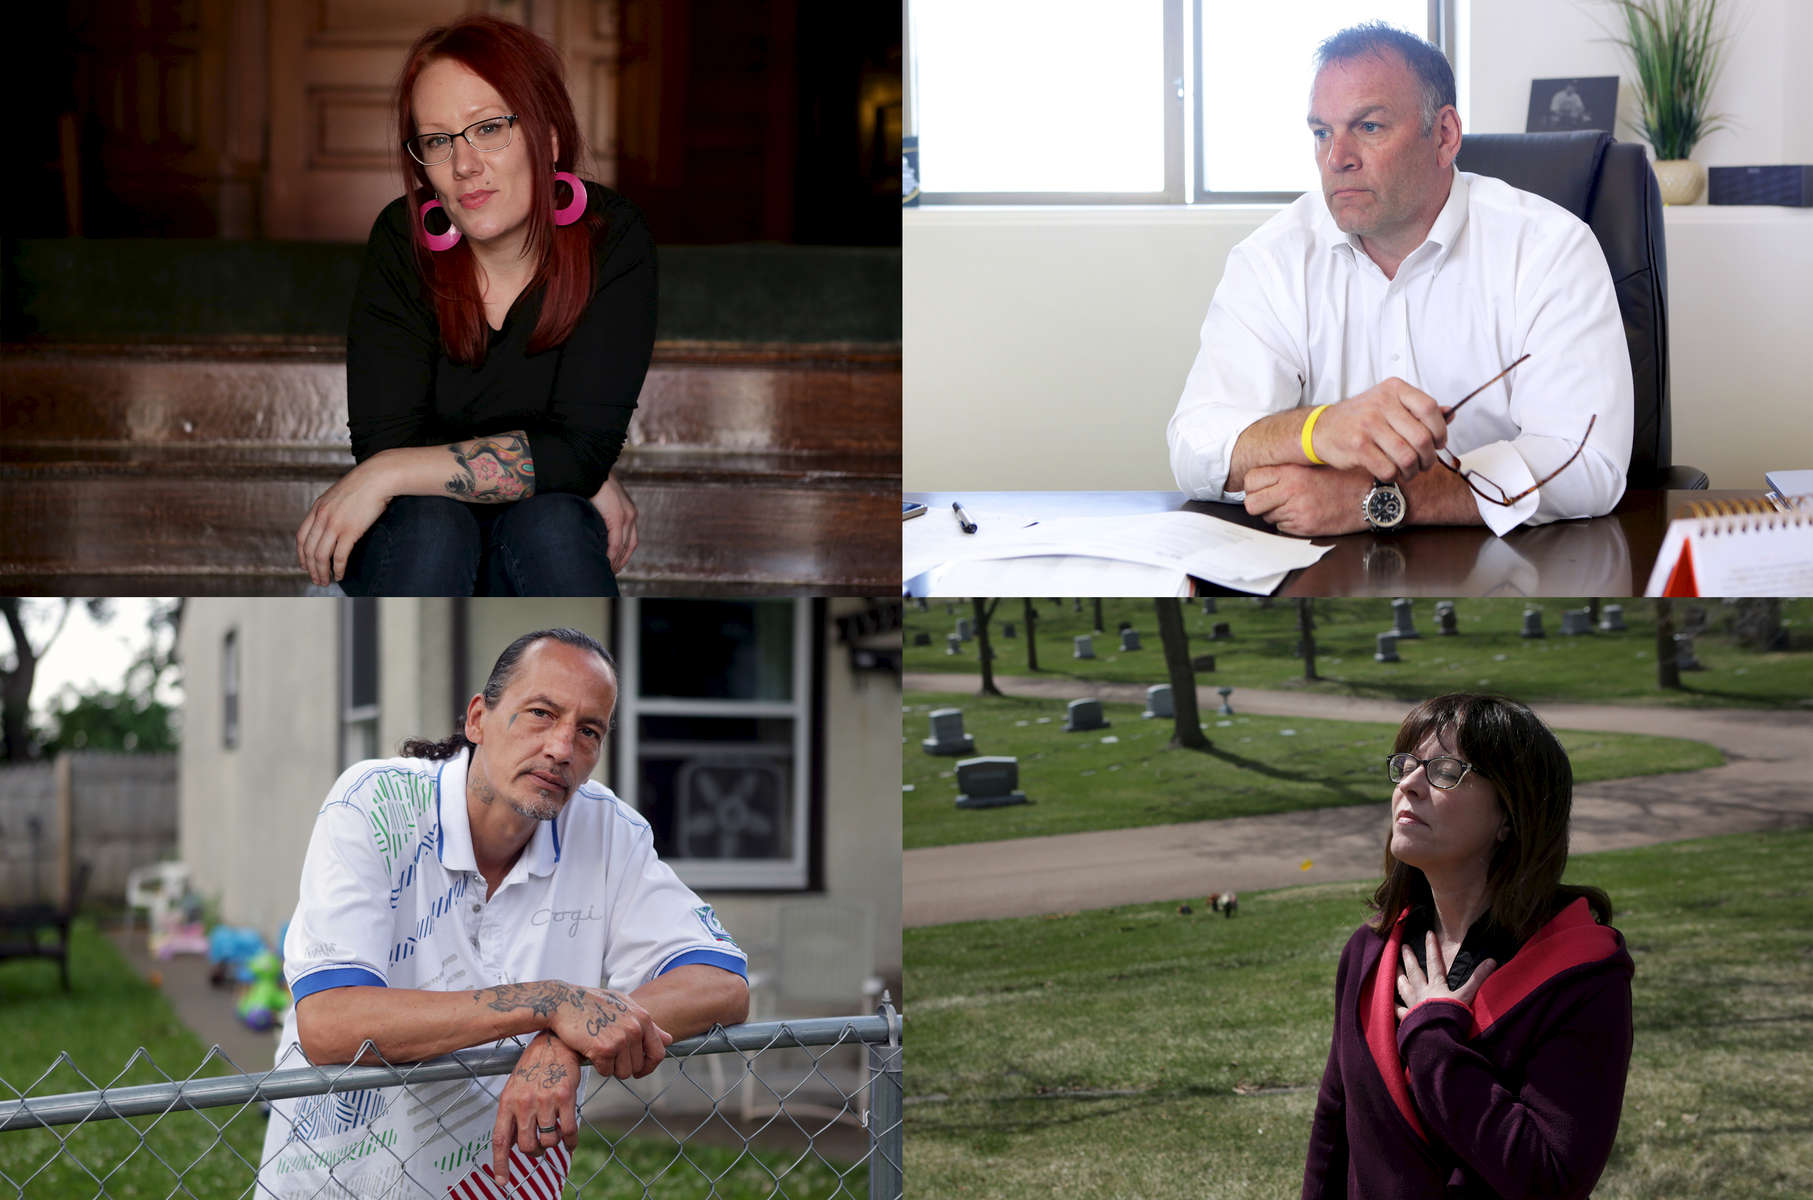 Clockwise from upper left, Liz Casper, Dave Baker, James Cross and Lexi Reed Holtum have all been affected by the heroin epidemic in Minnesota.